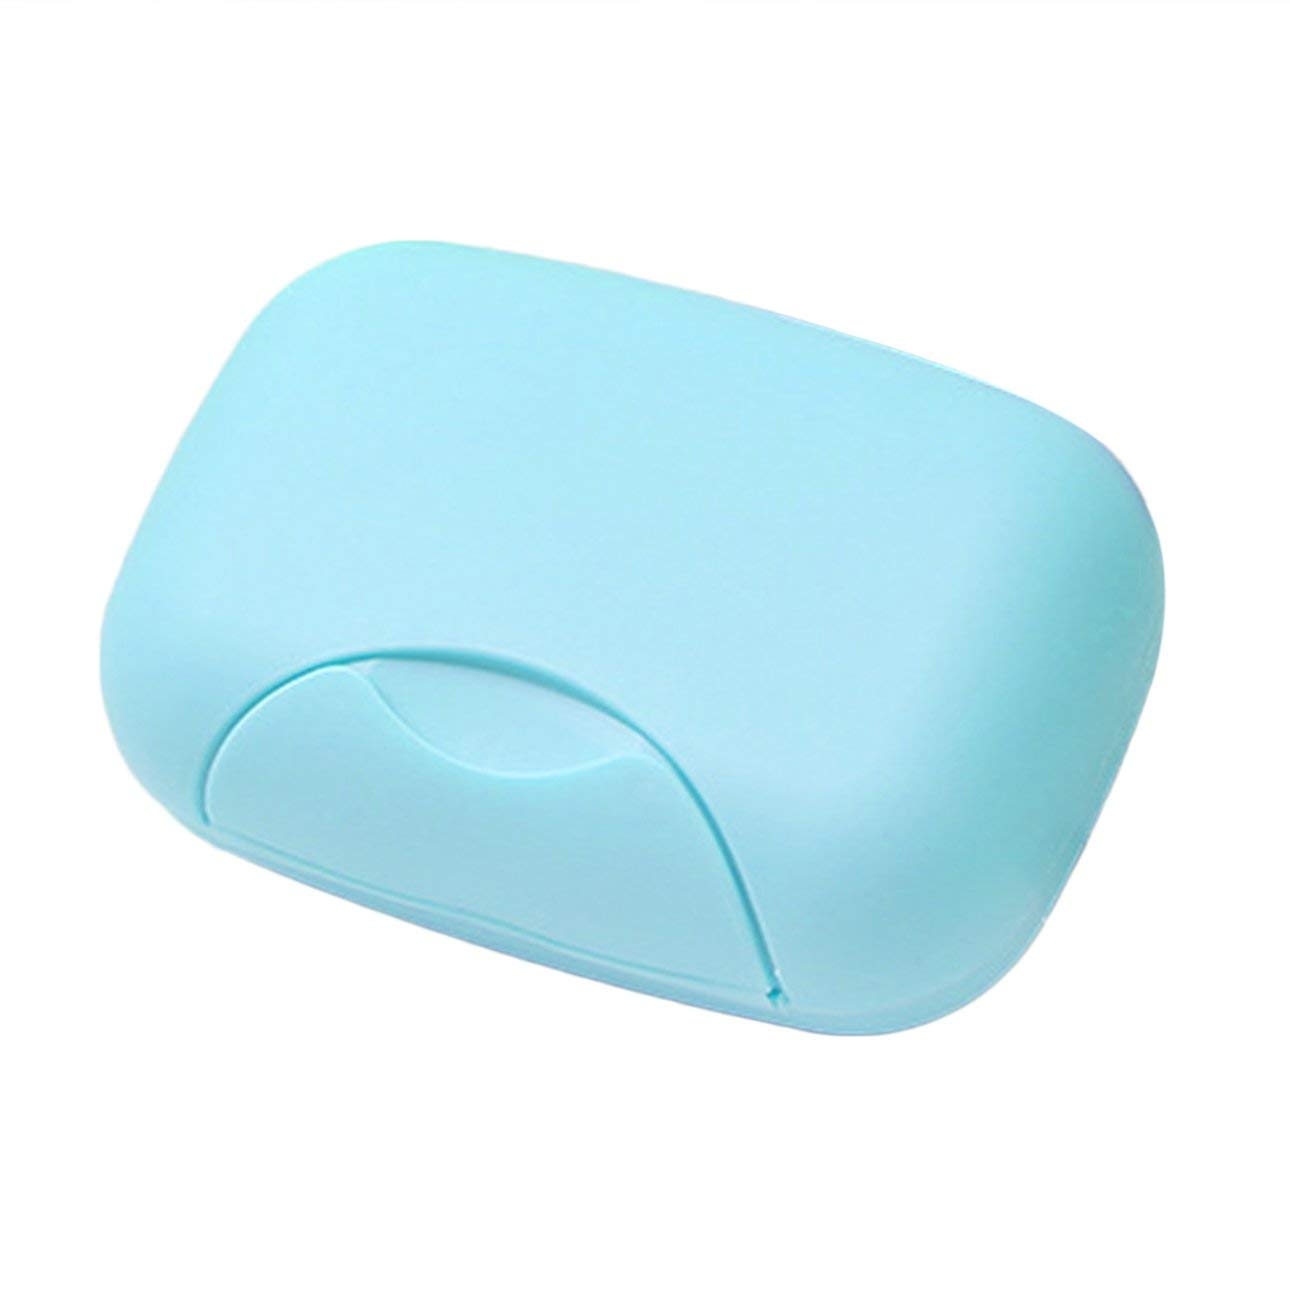 Liobaba Removable Soap Drainers Plastic Soap Holder Container Soap Saver Box Case Bathroom Shower Home Outdoor Travel